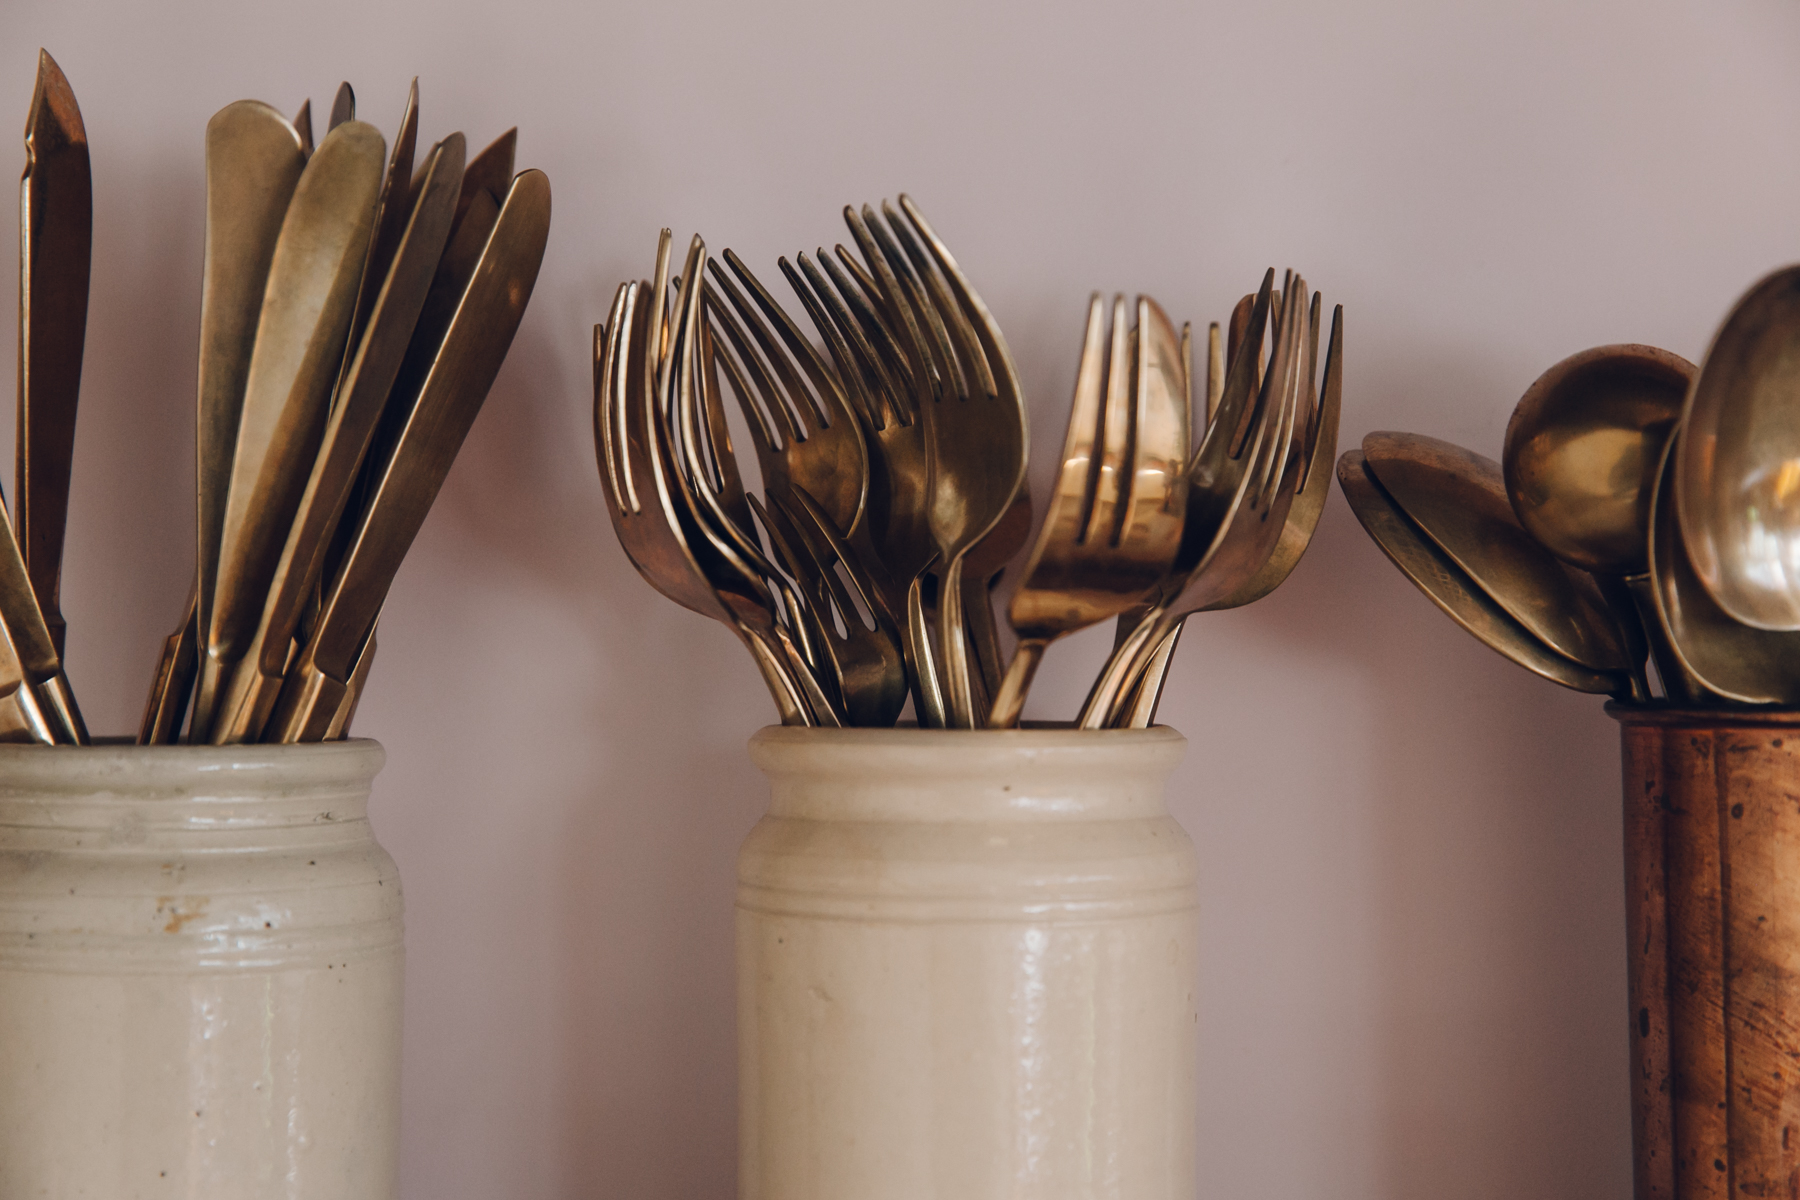 Brass and gold kitchen utensils and cutlery.